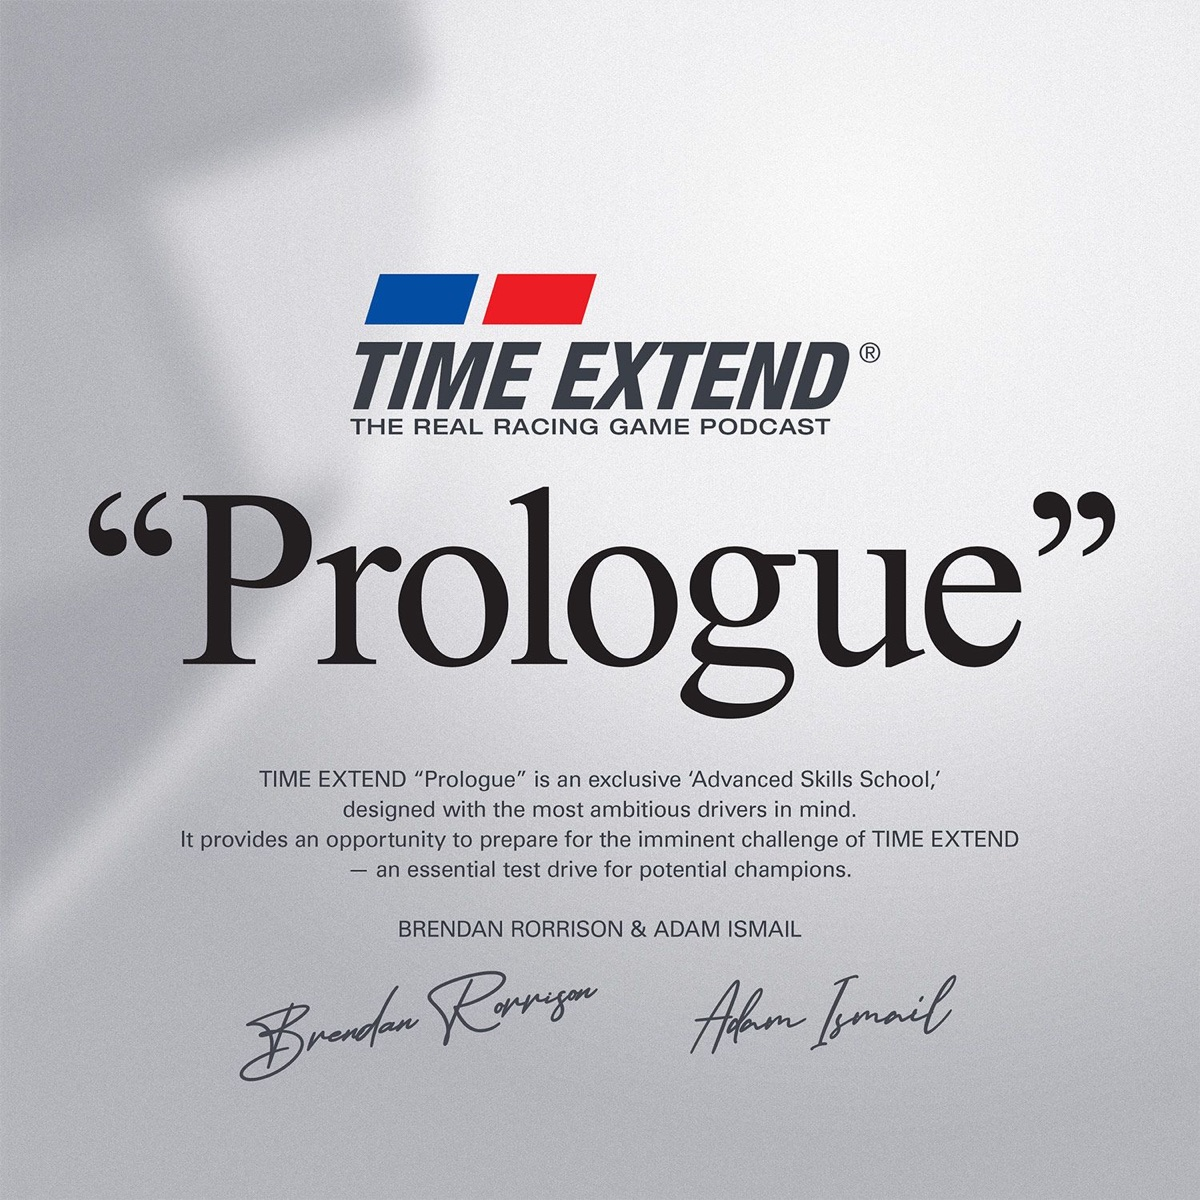 Time Extend